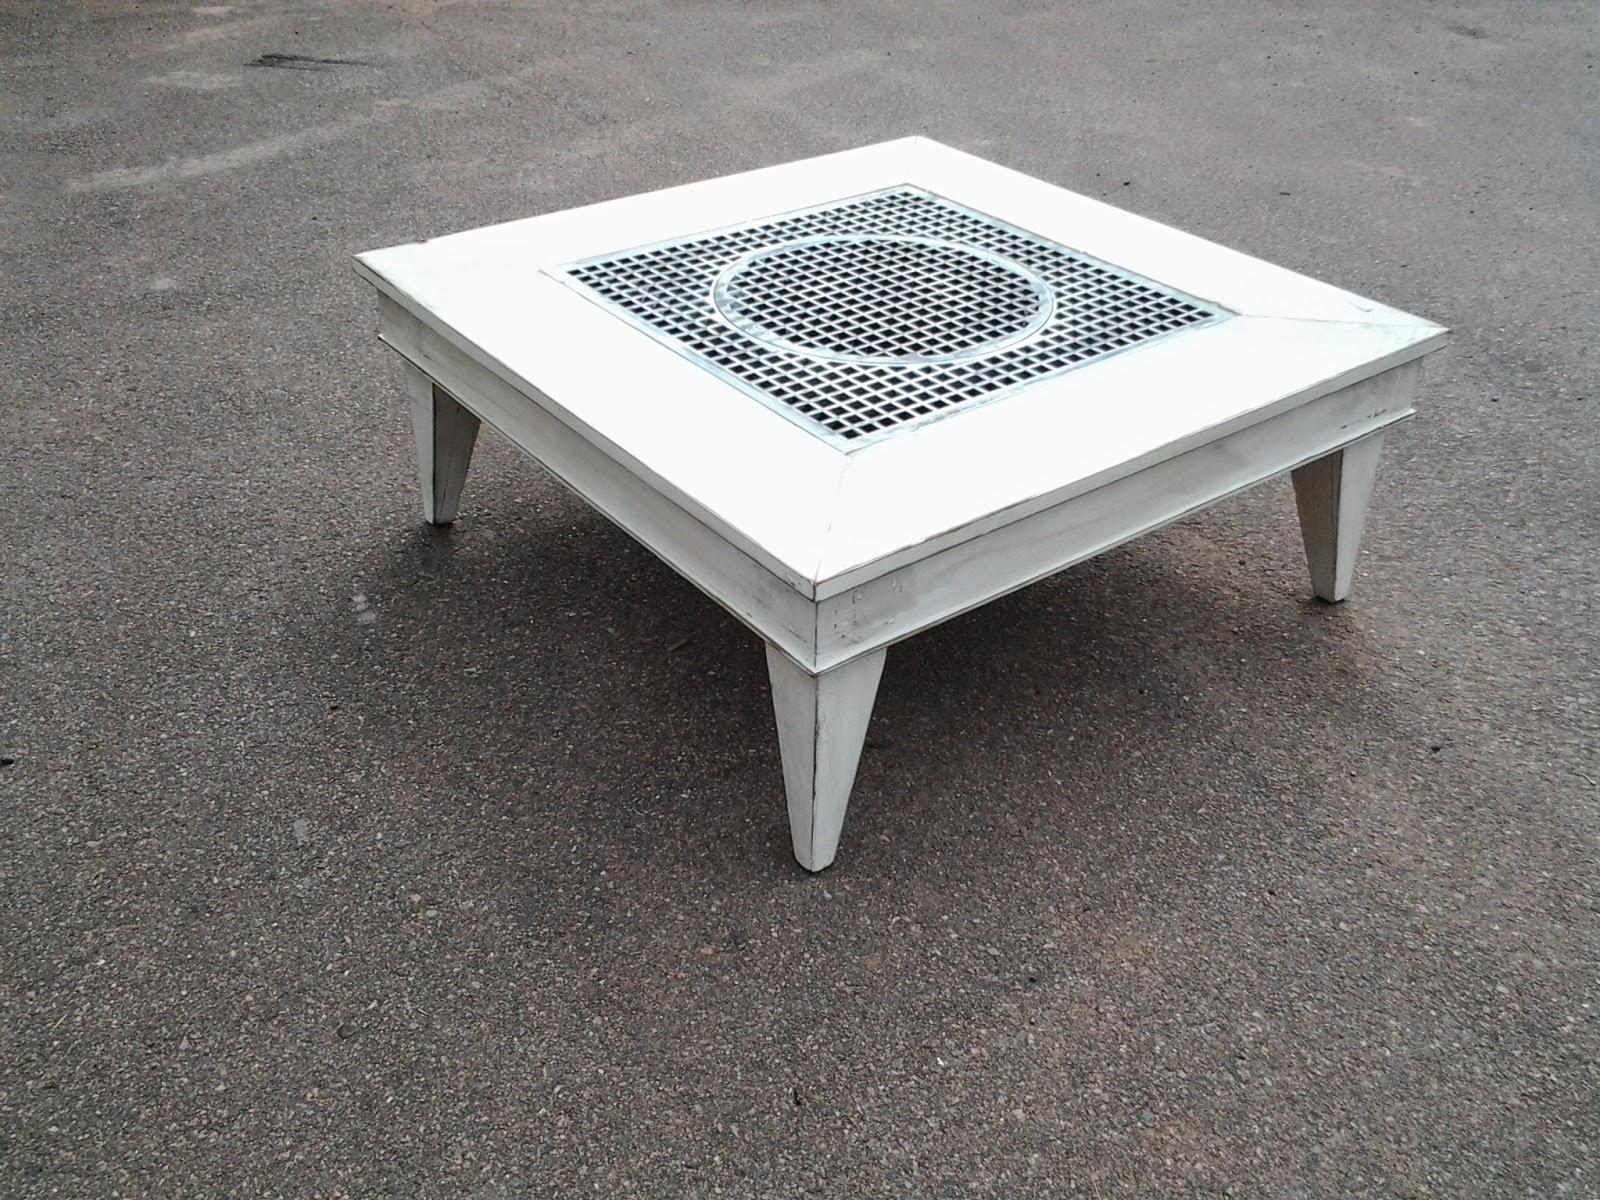 Large Coffee Table With Old Church Floor Grate